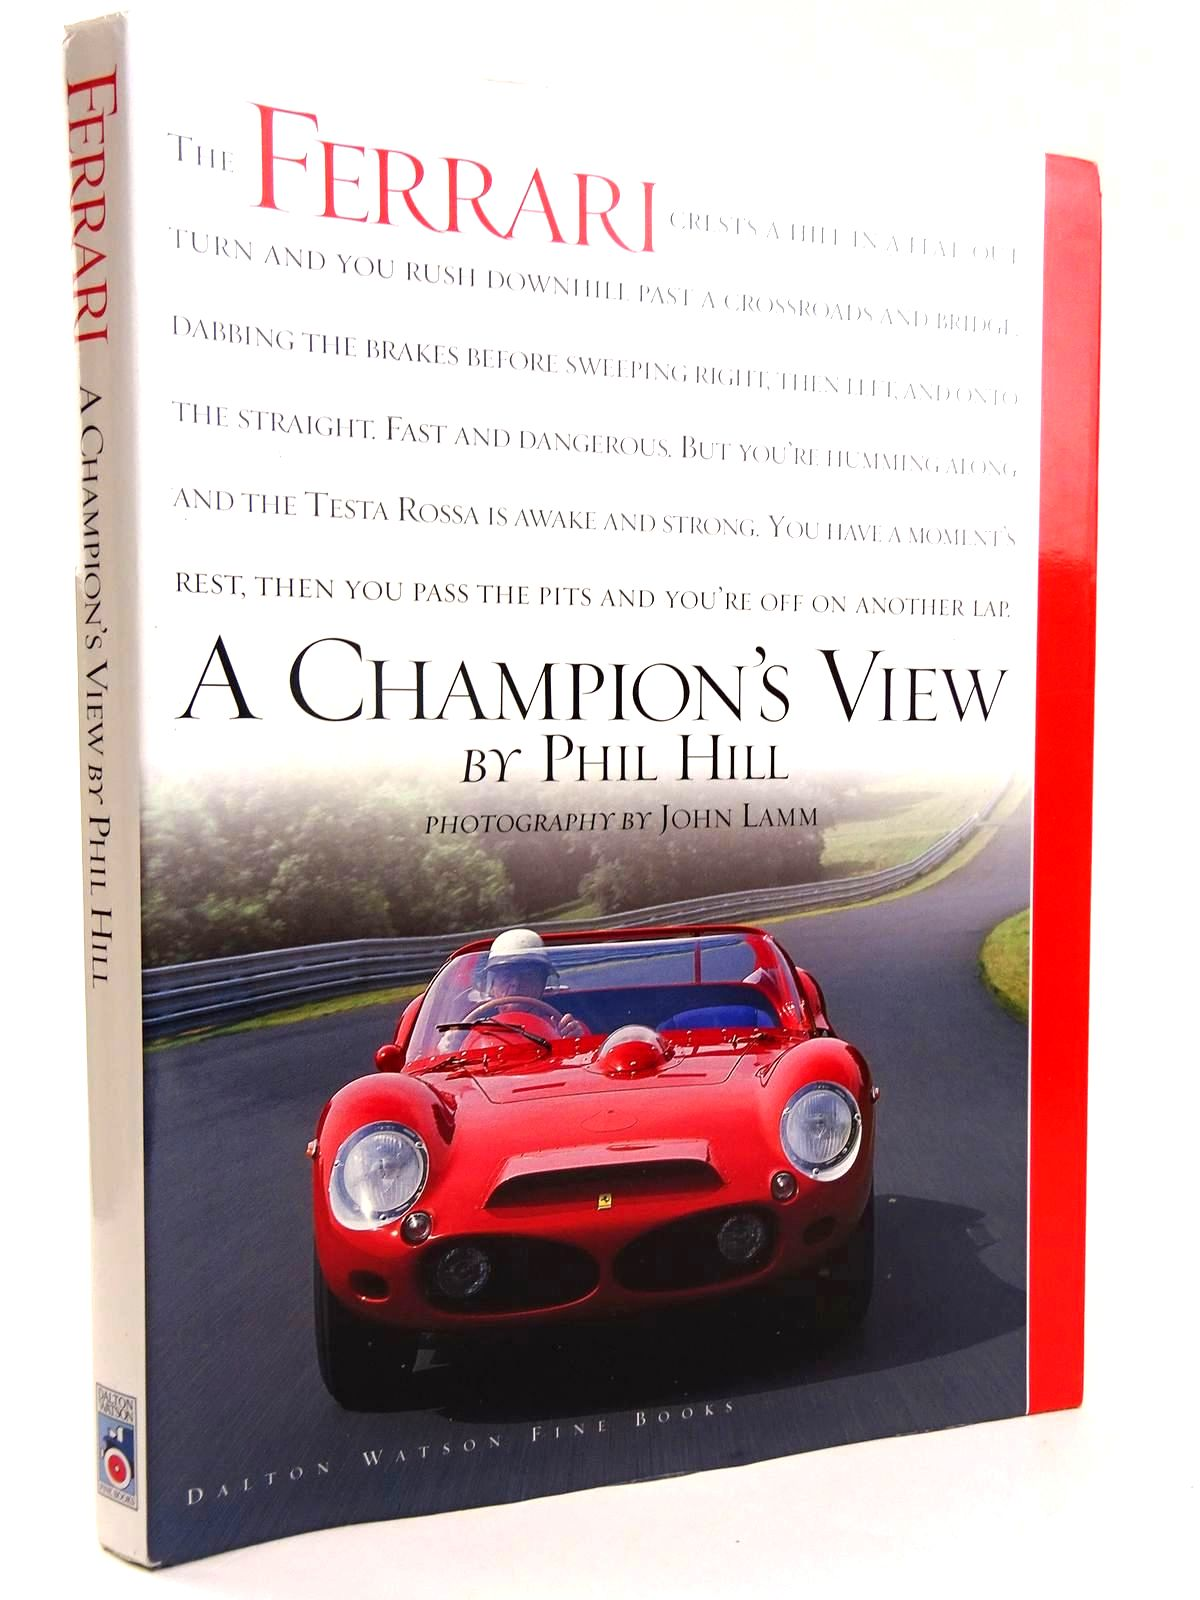 Photo of FERRARI THE SPORTS RACING CARS A CHAMPION'S VIEW written by Hill, Phil published by Dalton Watson Fine Books (STOCK CODE: 2131699)  for sale by Stella & Rose's Books